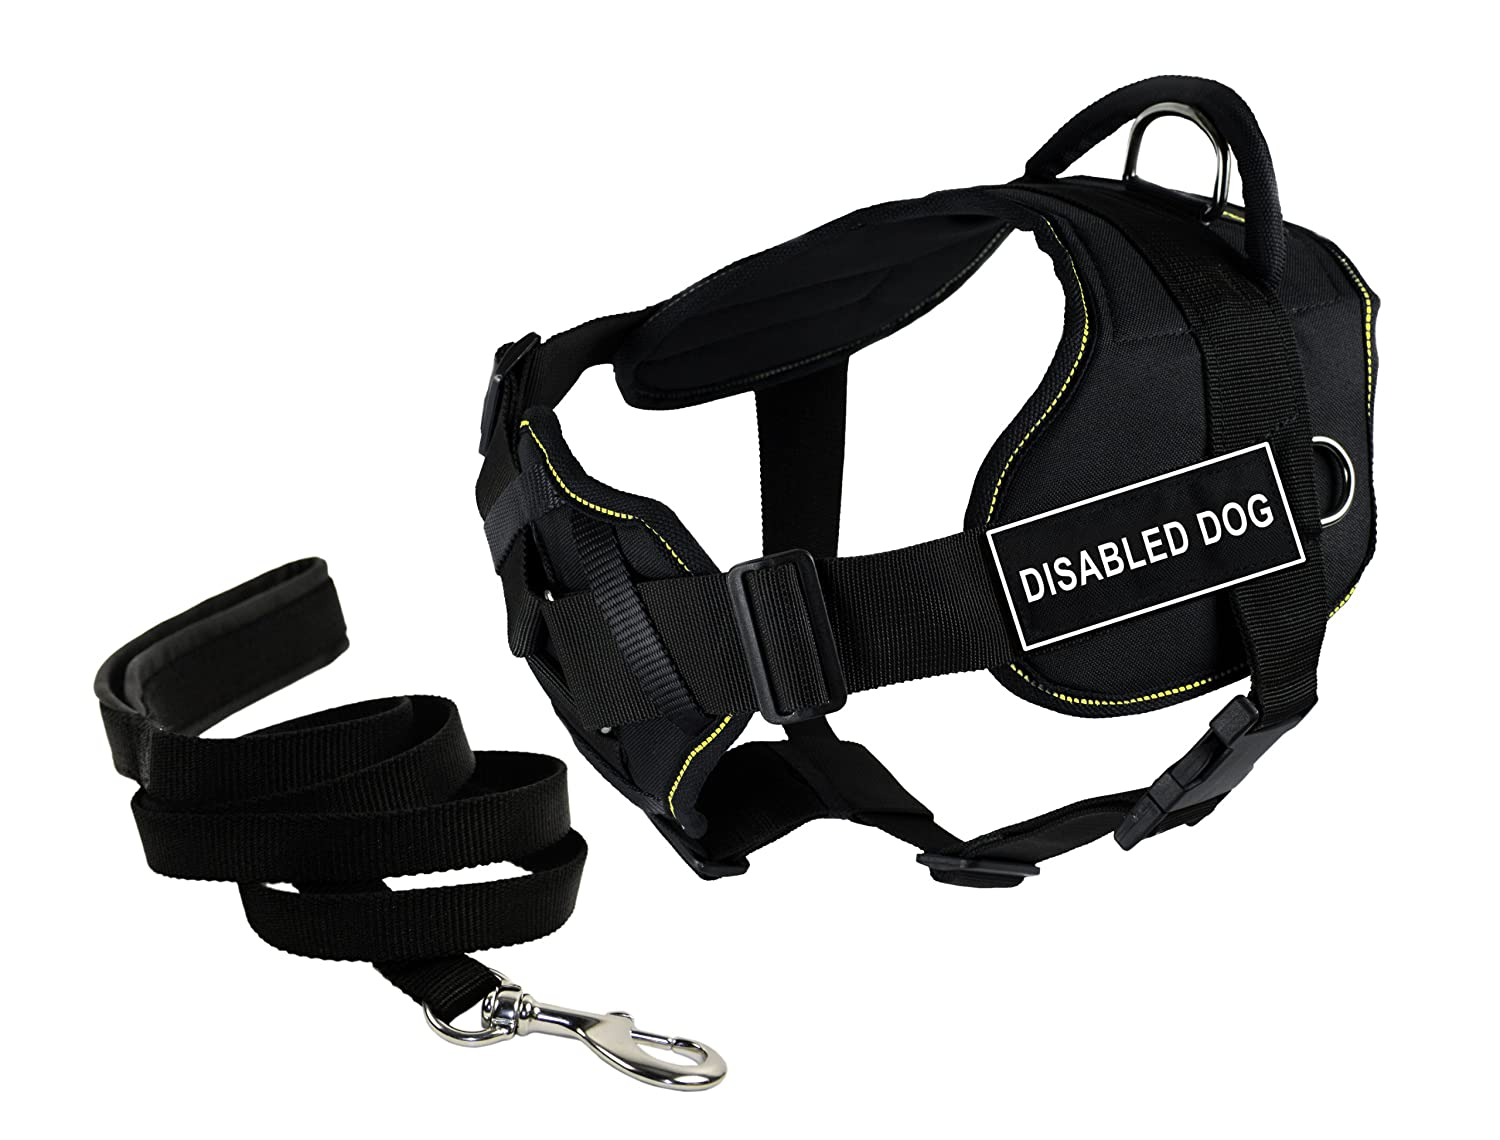 Dean & Tyler's DT Fun Chest Support DISABLED DOG Harness, Large, with 6 ft Padded Puppy Leash.